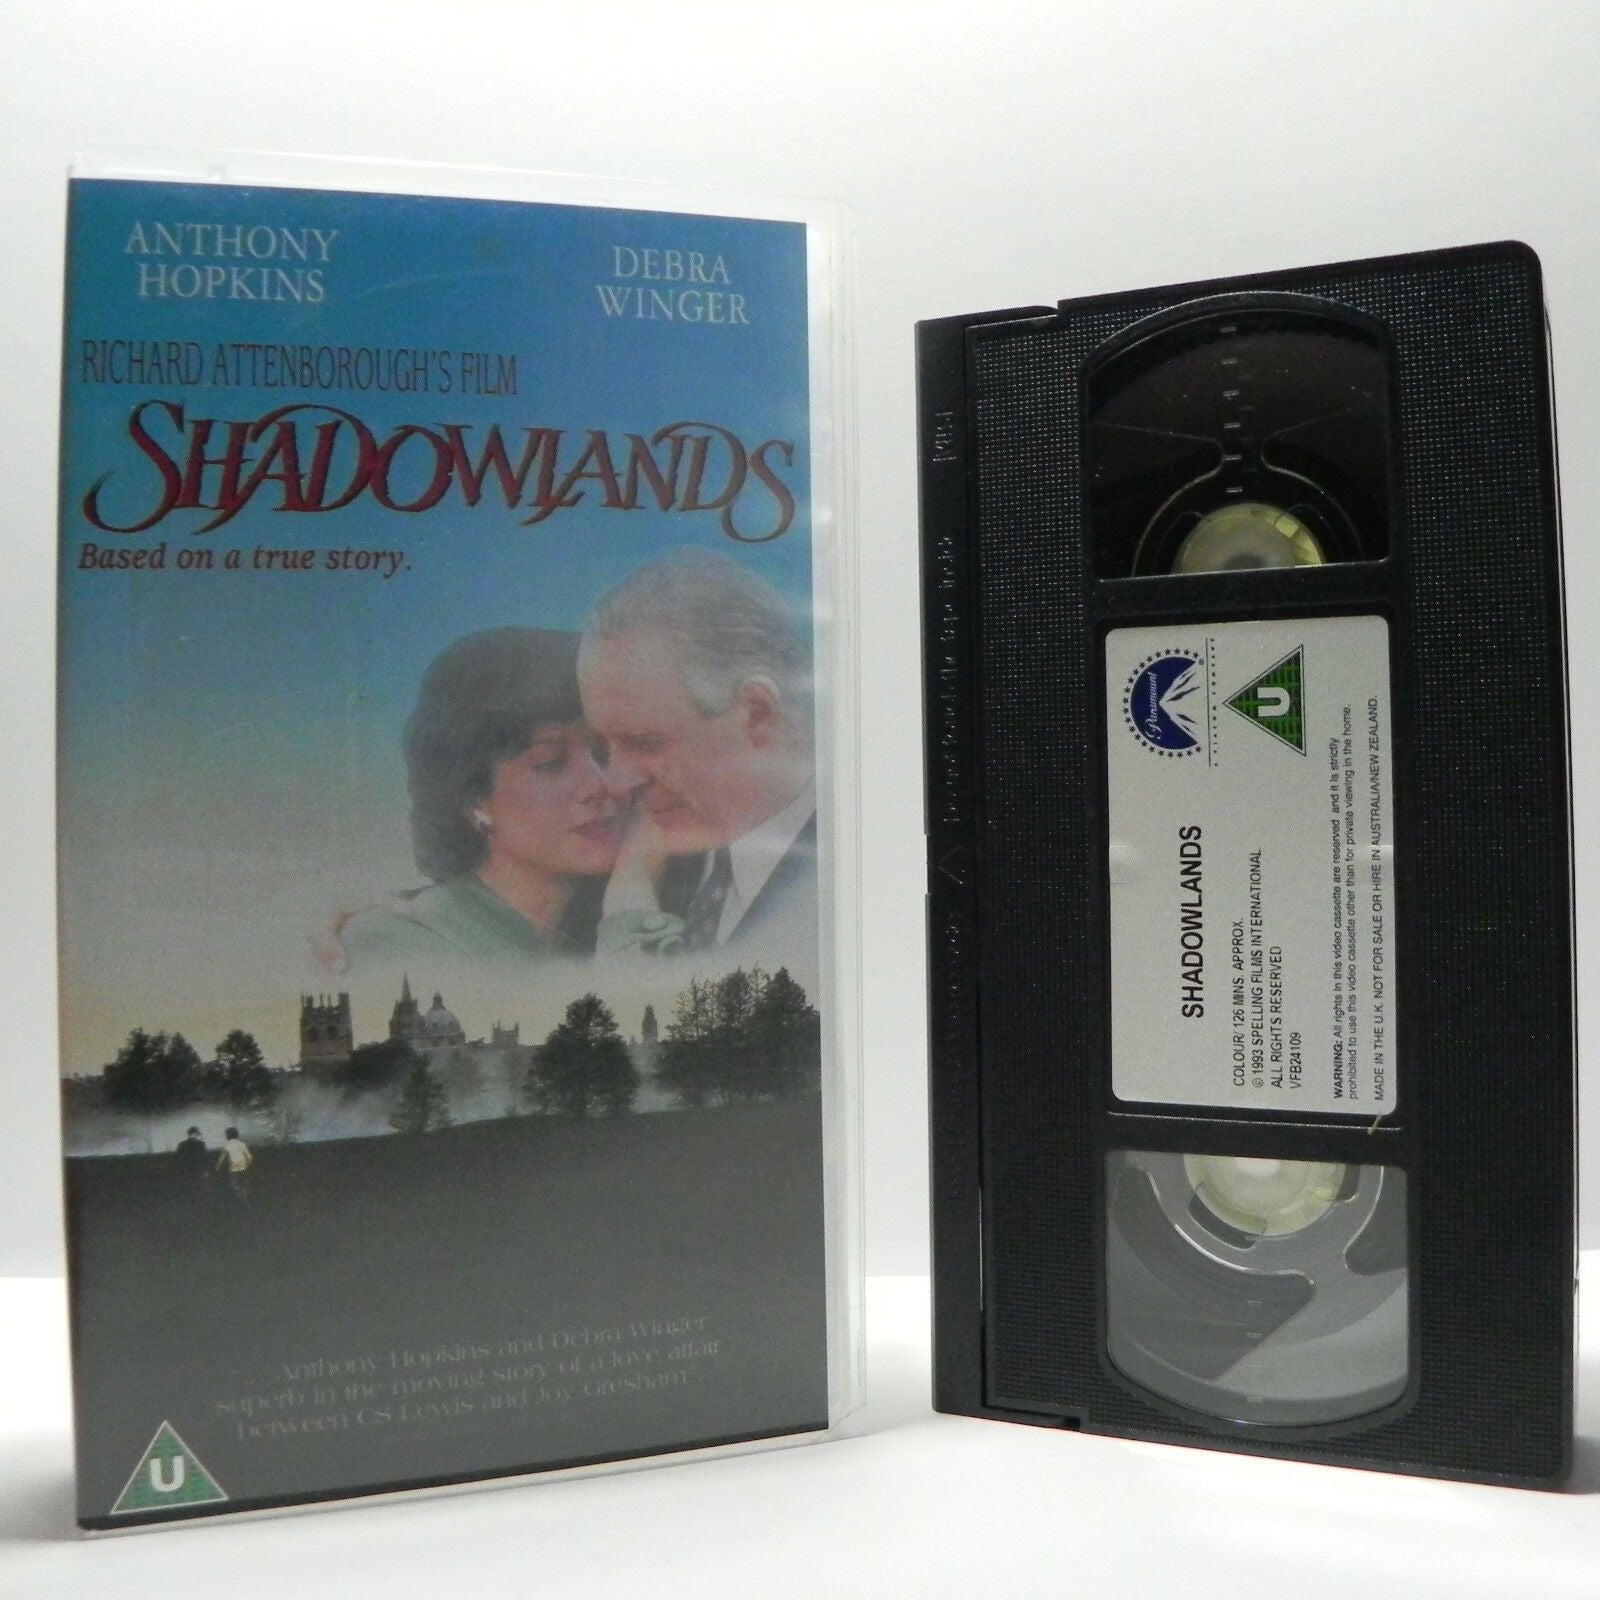 Shadowlands: Anthony Hopkins/Debra Winger - (2000) Drama - True Story - Pal VHS